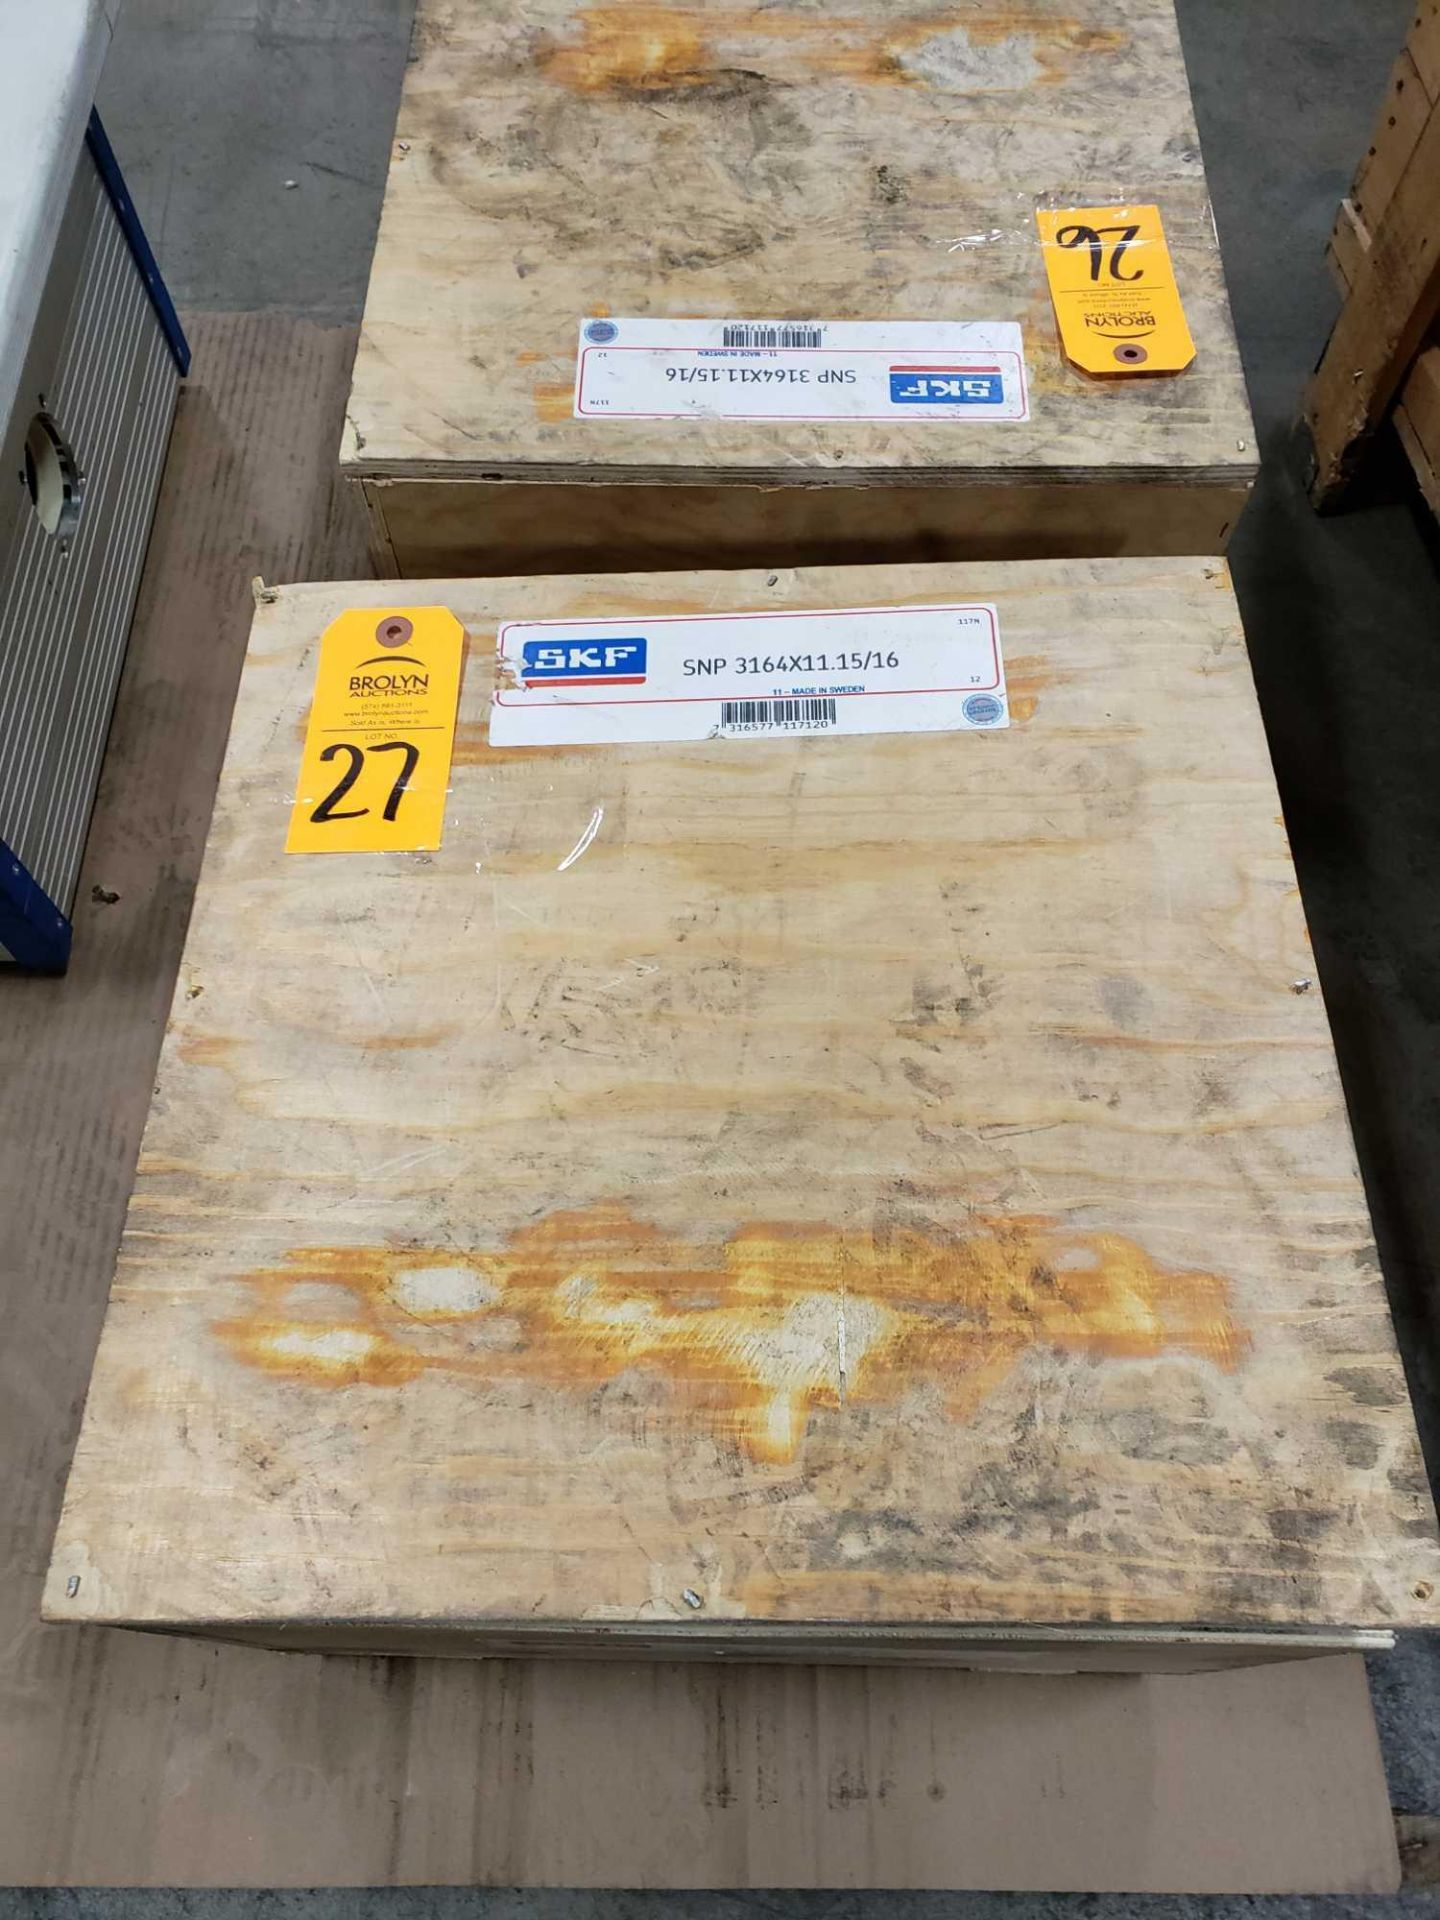 Lot 27 - SKF bearing adapter part number SNP3164X11.15/16. New in crate.